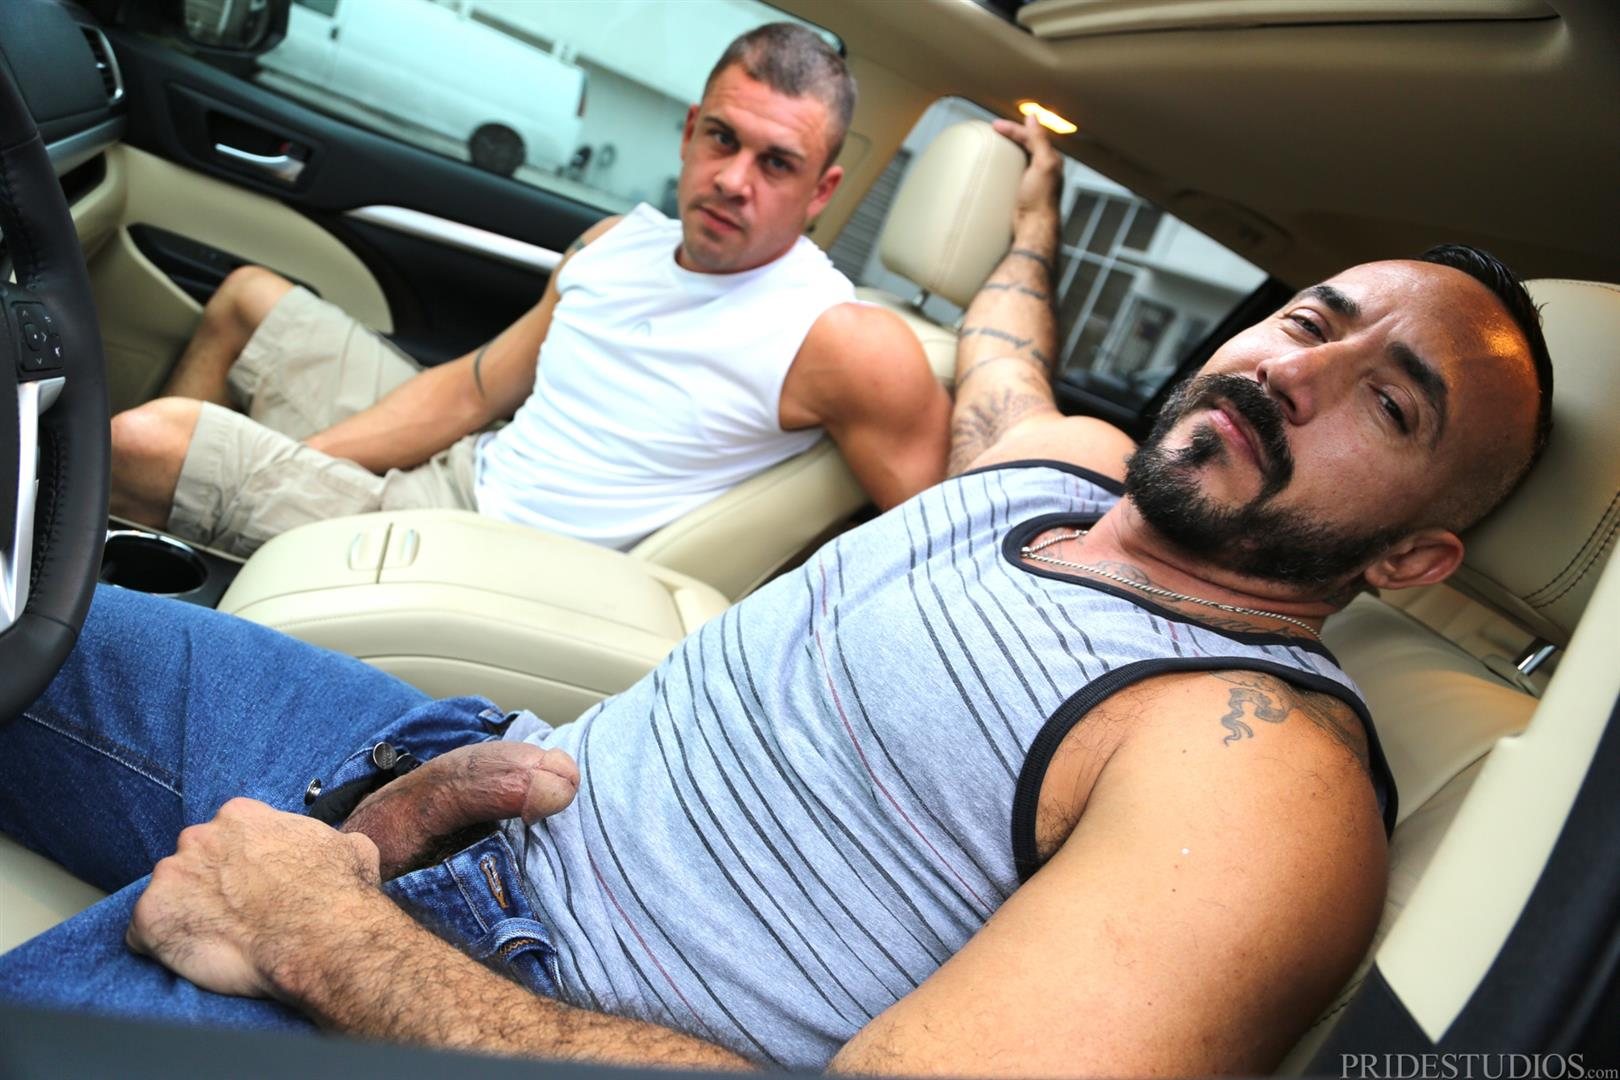 Men Over 30 Darin Silvers and Alessio Romero Hitchhiker Fucking Hairy Ass Amateur Gay Porn 02